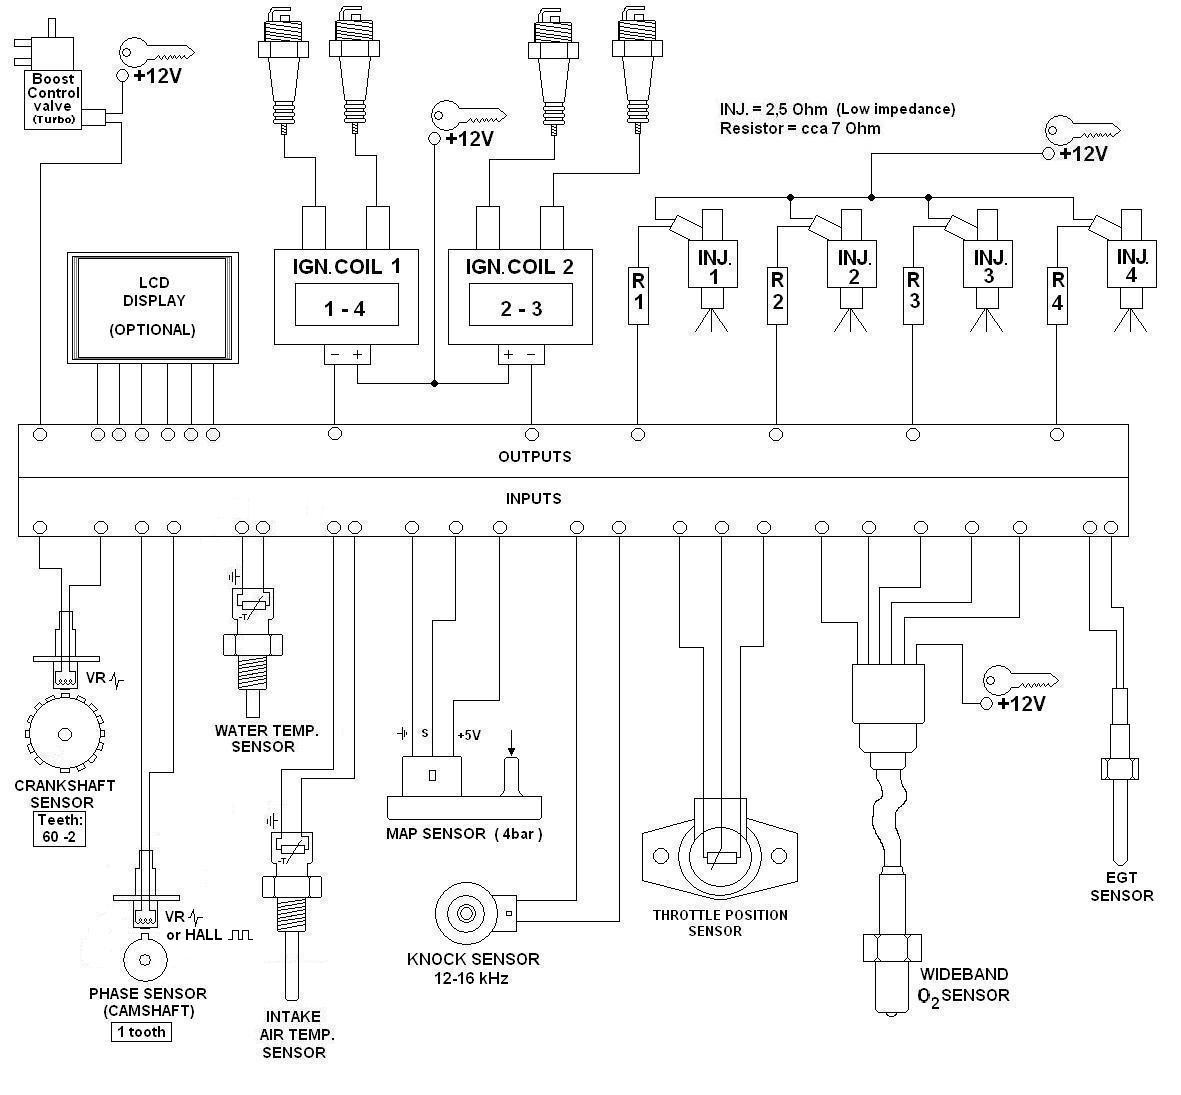 Wiring diagram (VEMS) Tomas Polonec Fiat 127 Lancia engine fiat doblo wiring diagram efcaviation com fiat doblo wiring diagram pdf at alyssarenee.co